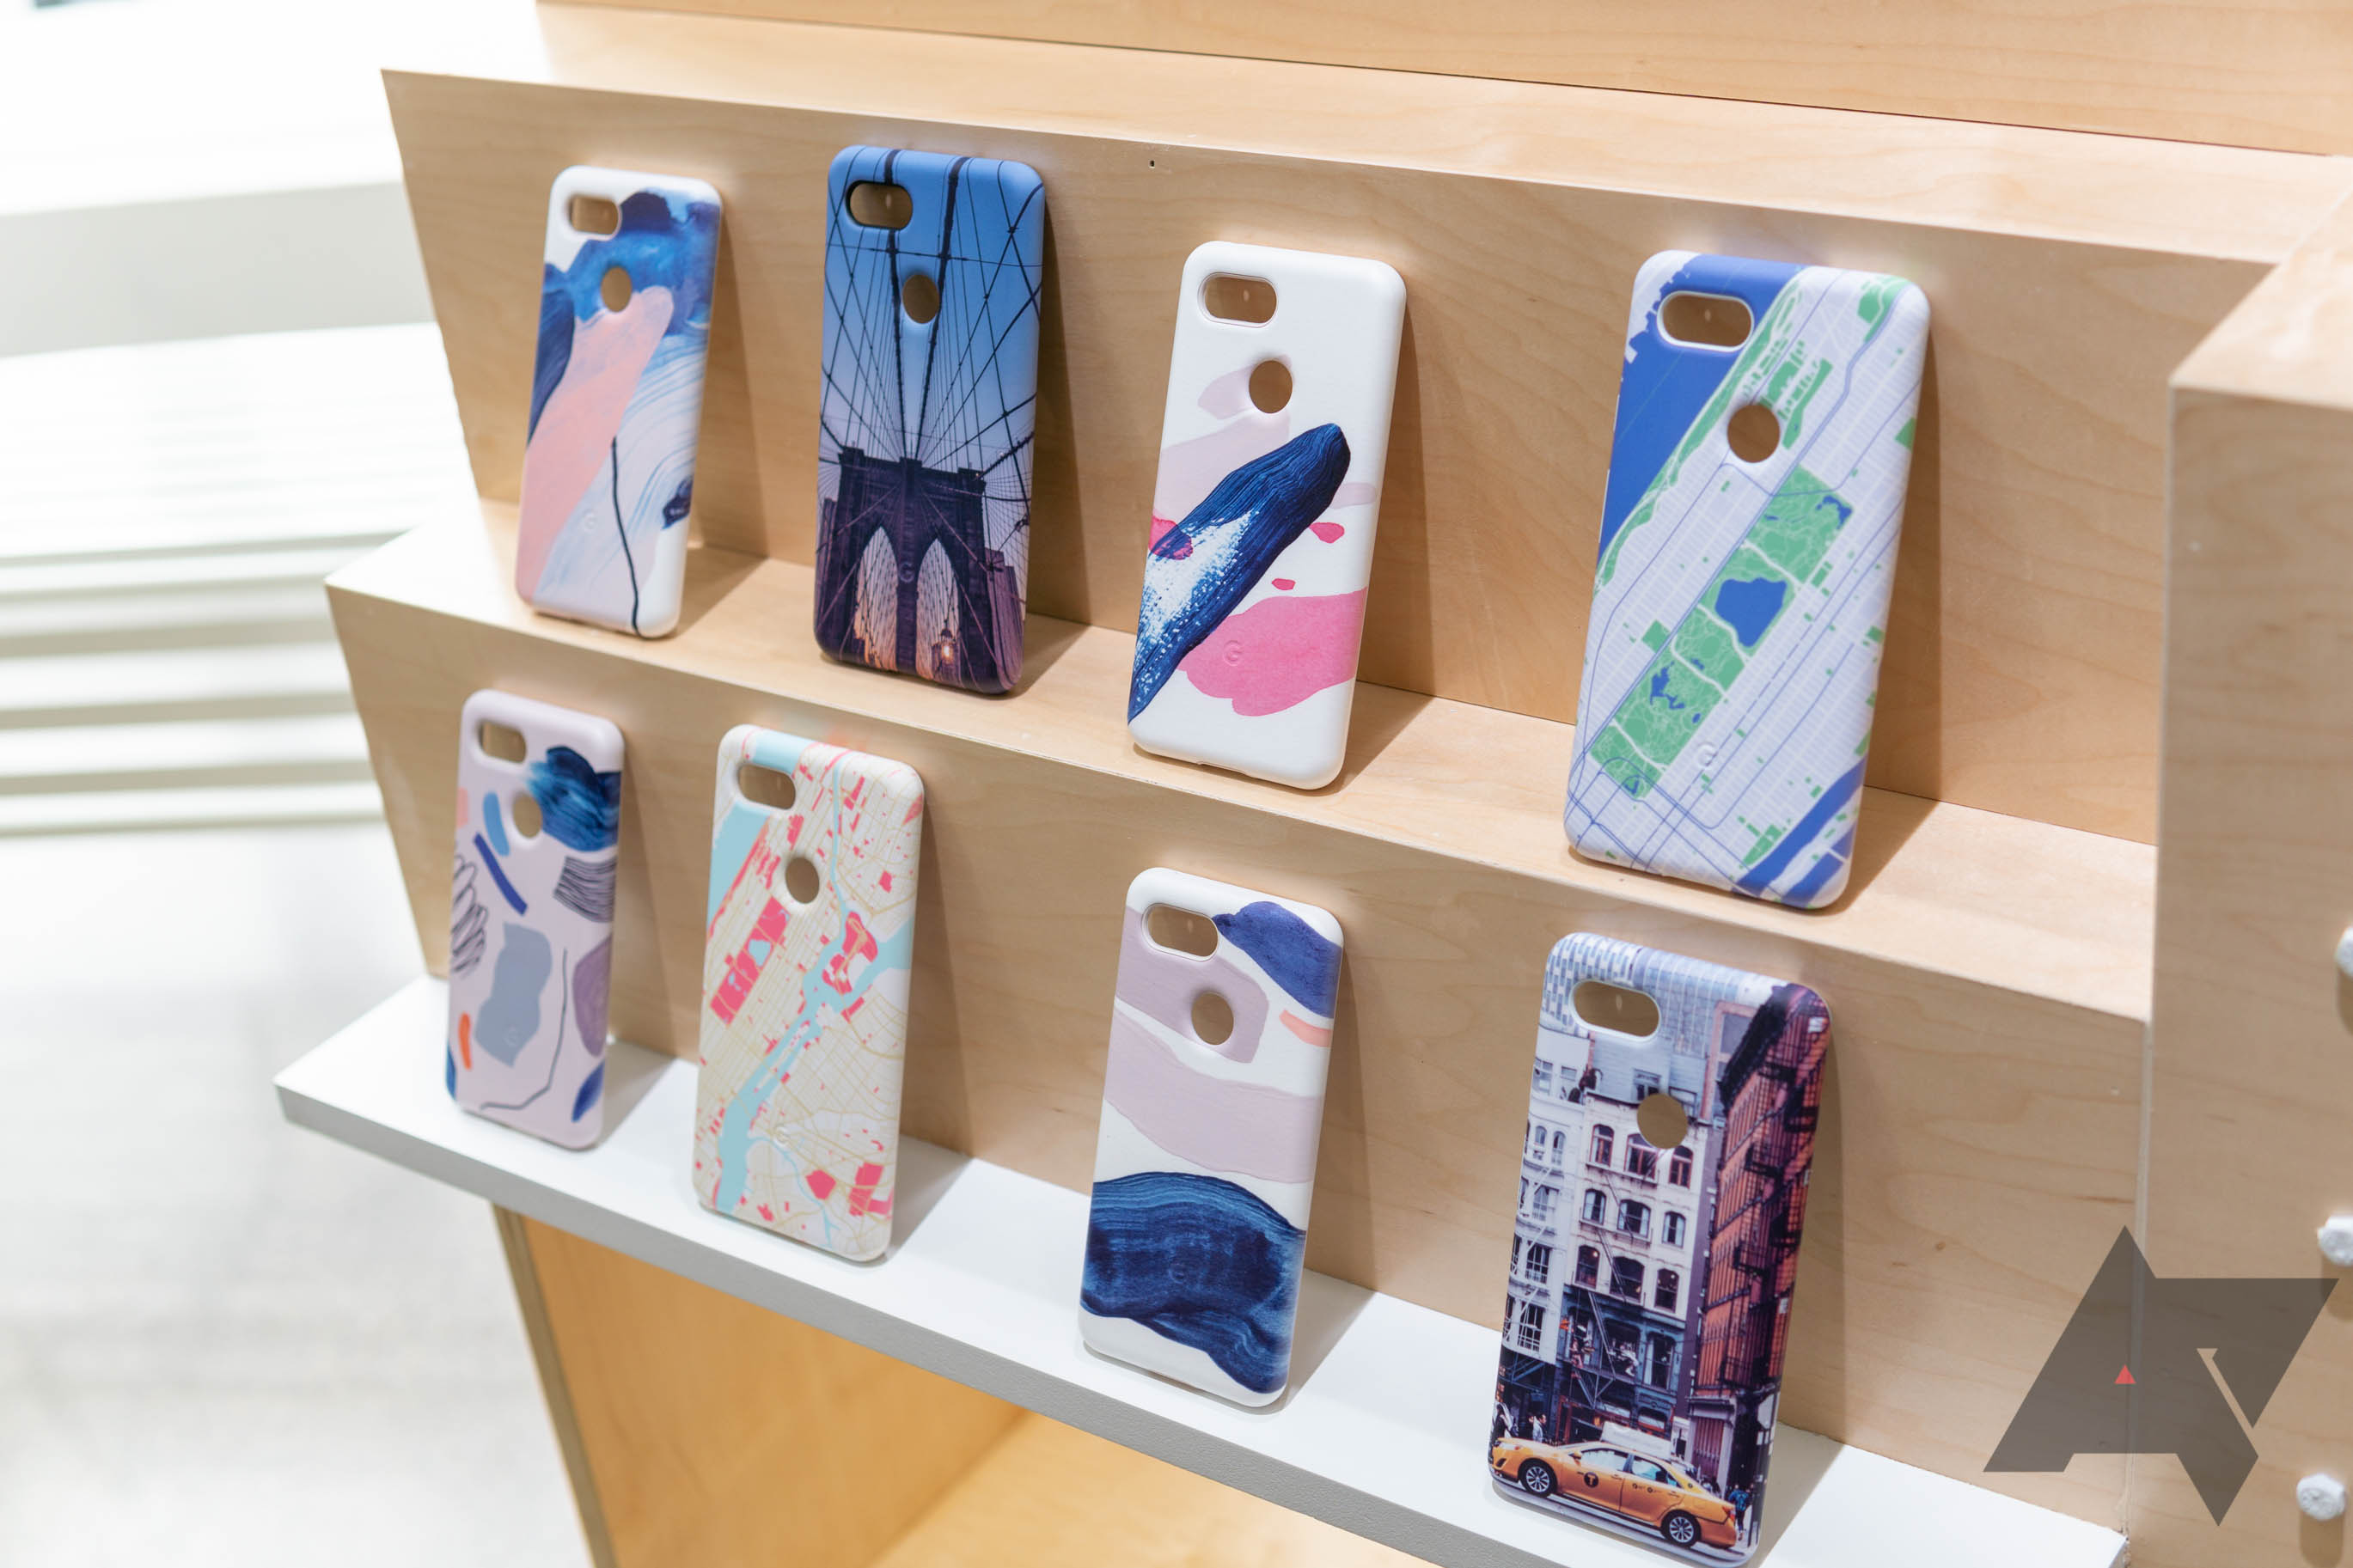 Google quietly removed custom 'My Case' option for Pixels from its store